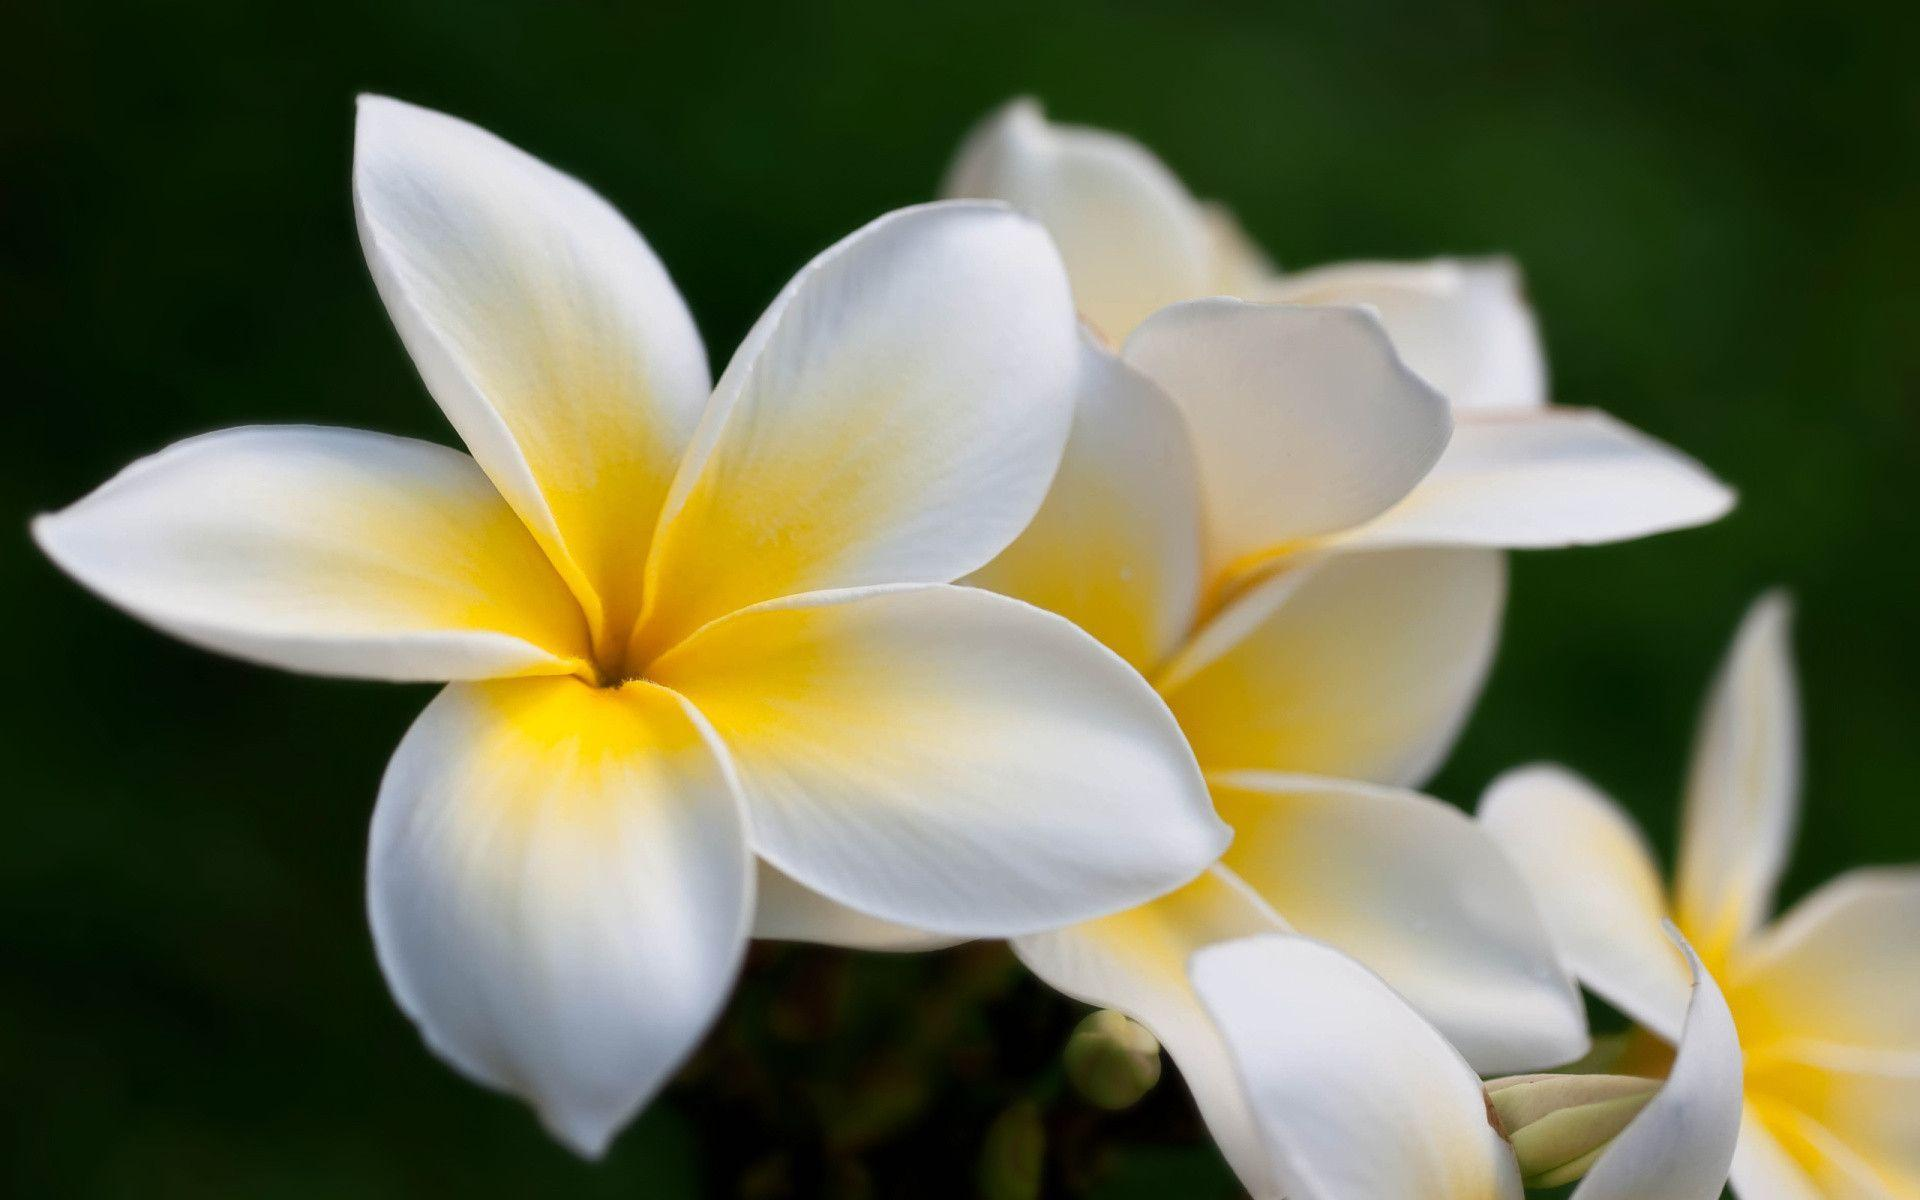 Plumeria Wallpapers Wallpaper Cave HD Wallpapers Download Free Images Wallpaper [1000image.com]